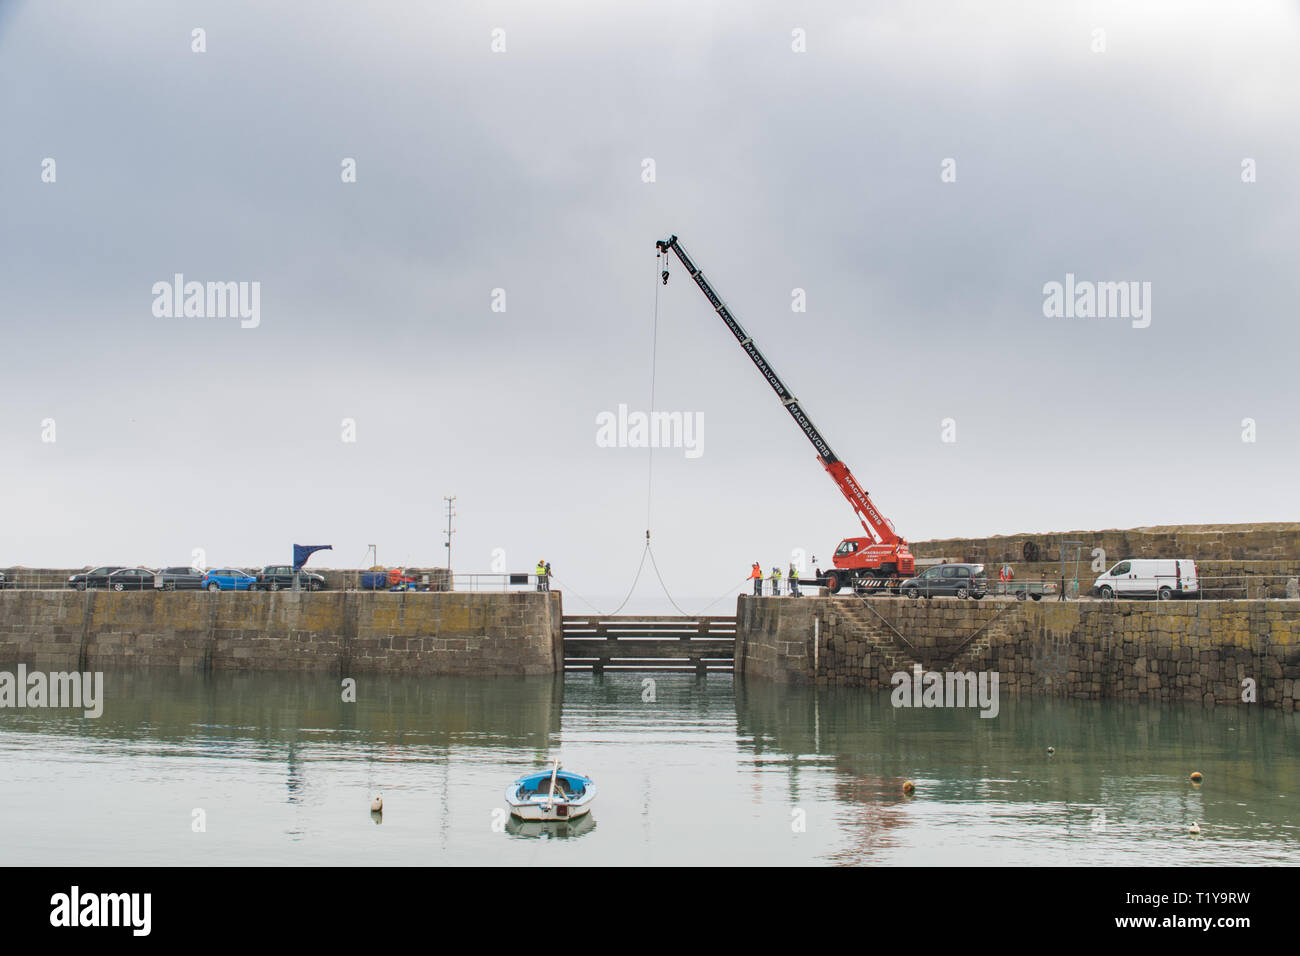 """Mousehole, Cornwall, UK. 29th Mar, 2019. As the clocks go forward this weekend, heradling the start of British Summer Time, so the giant timber """"baulks"""" that protect Mousehole harbour during the winter months are lifted out, allowing the tiny fishing fleet, as well as leisure boats in and out of the harbour. Credit: Simon Maycock/Alamy Live News Stock Photo"""